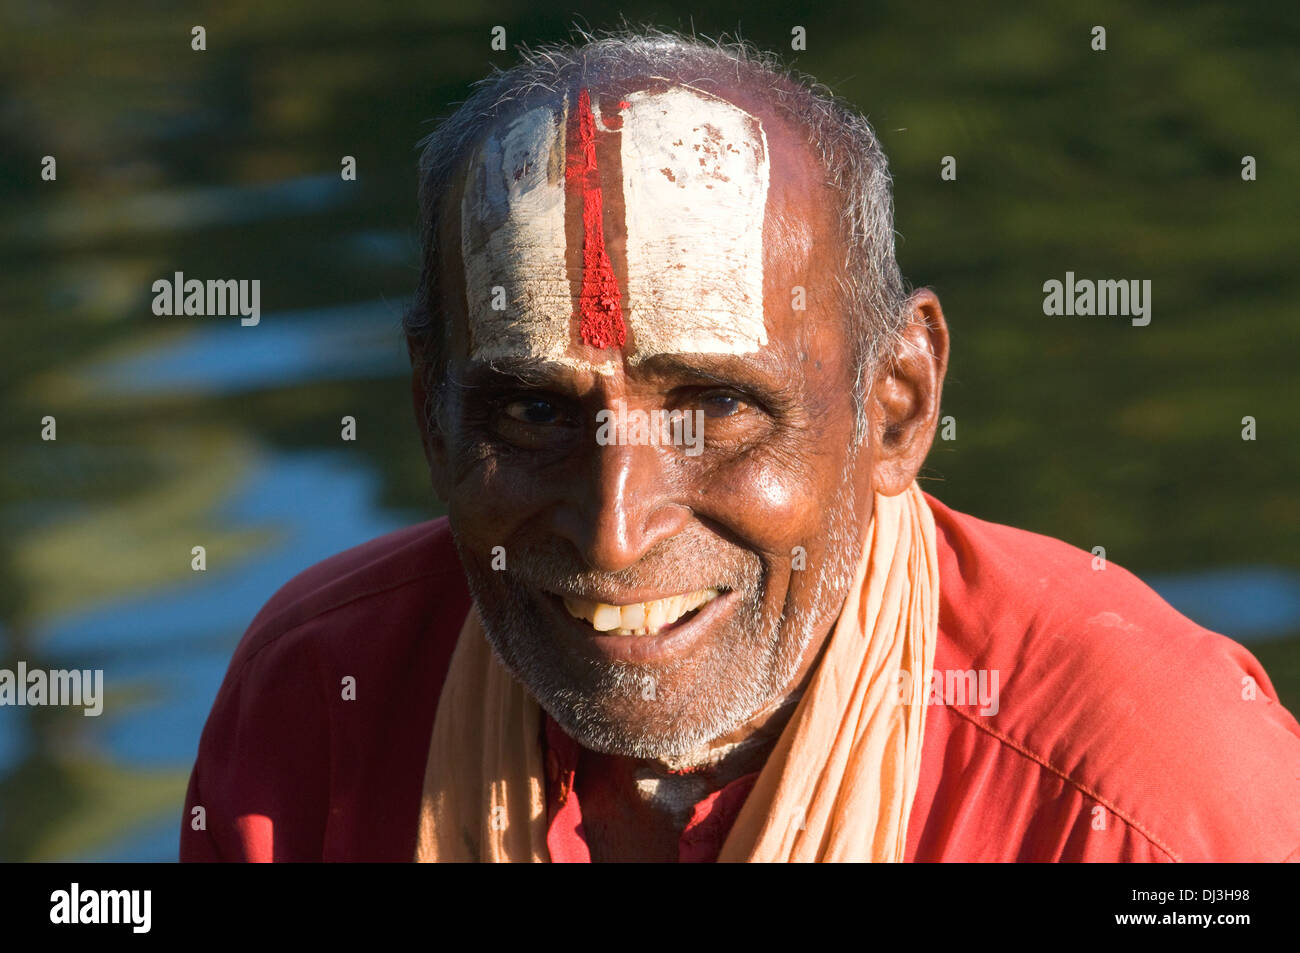 Sadhu, Indian holy man and renunciant and devotee of Lord Vishnu shown here with the style of adornment on his forehead - Stock Image